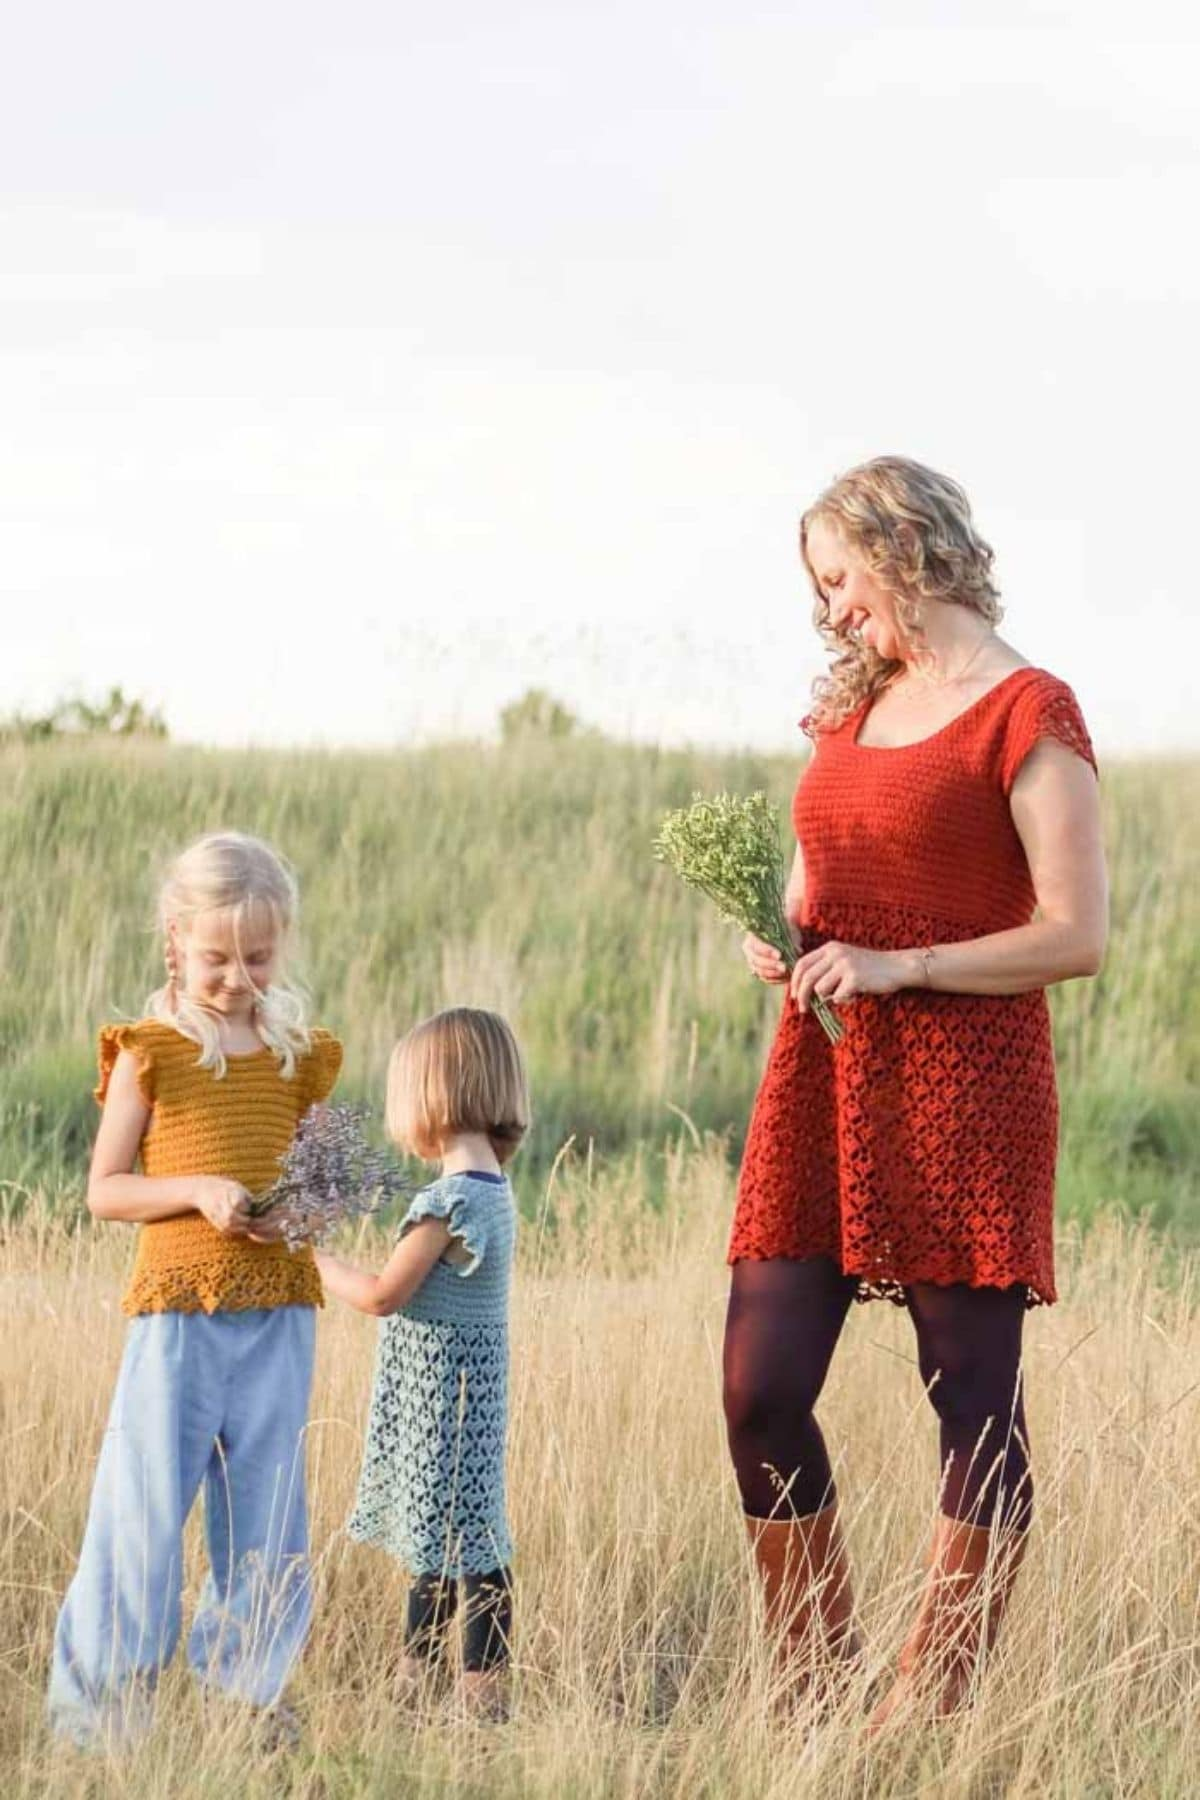 Woman in maroon dress next to two girls in dresses